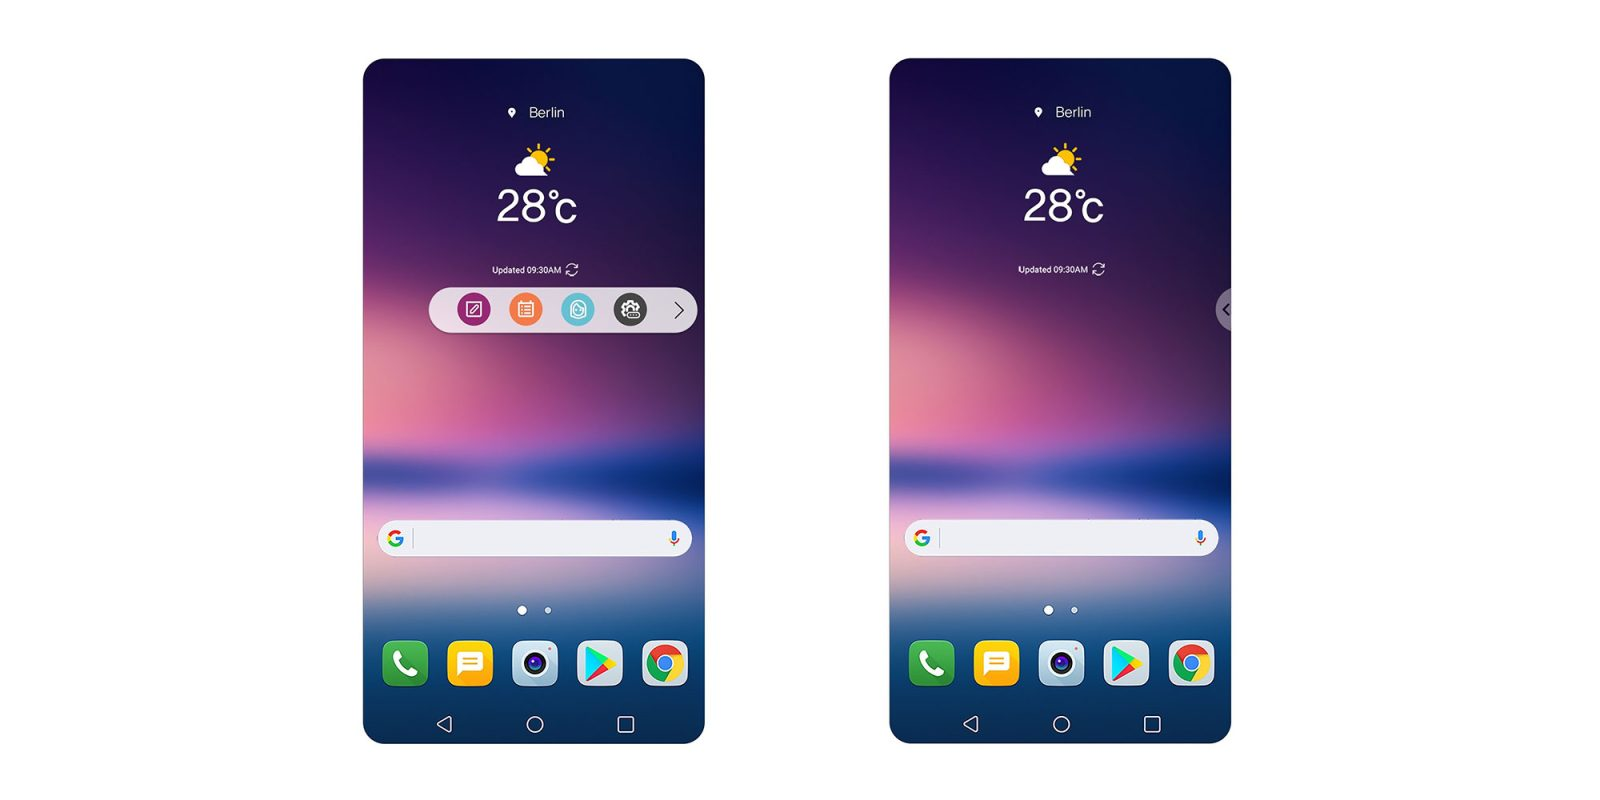 LG V30: How to customize the floating bar - 9to5Google